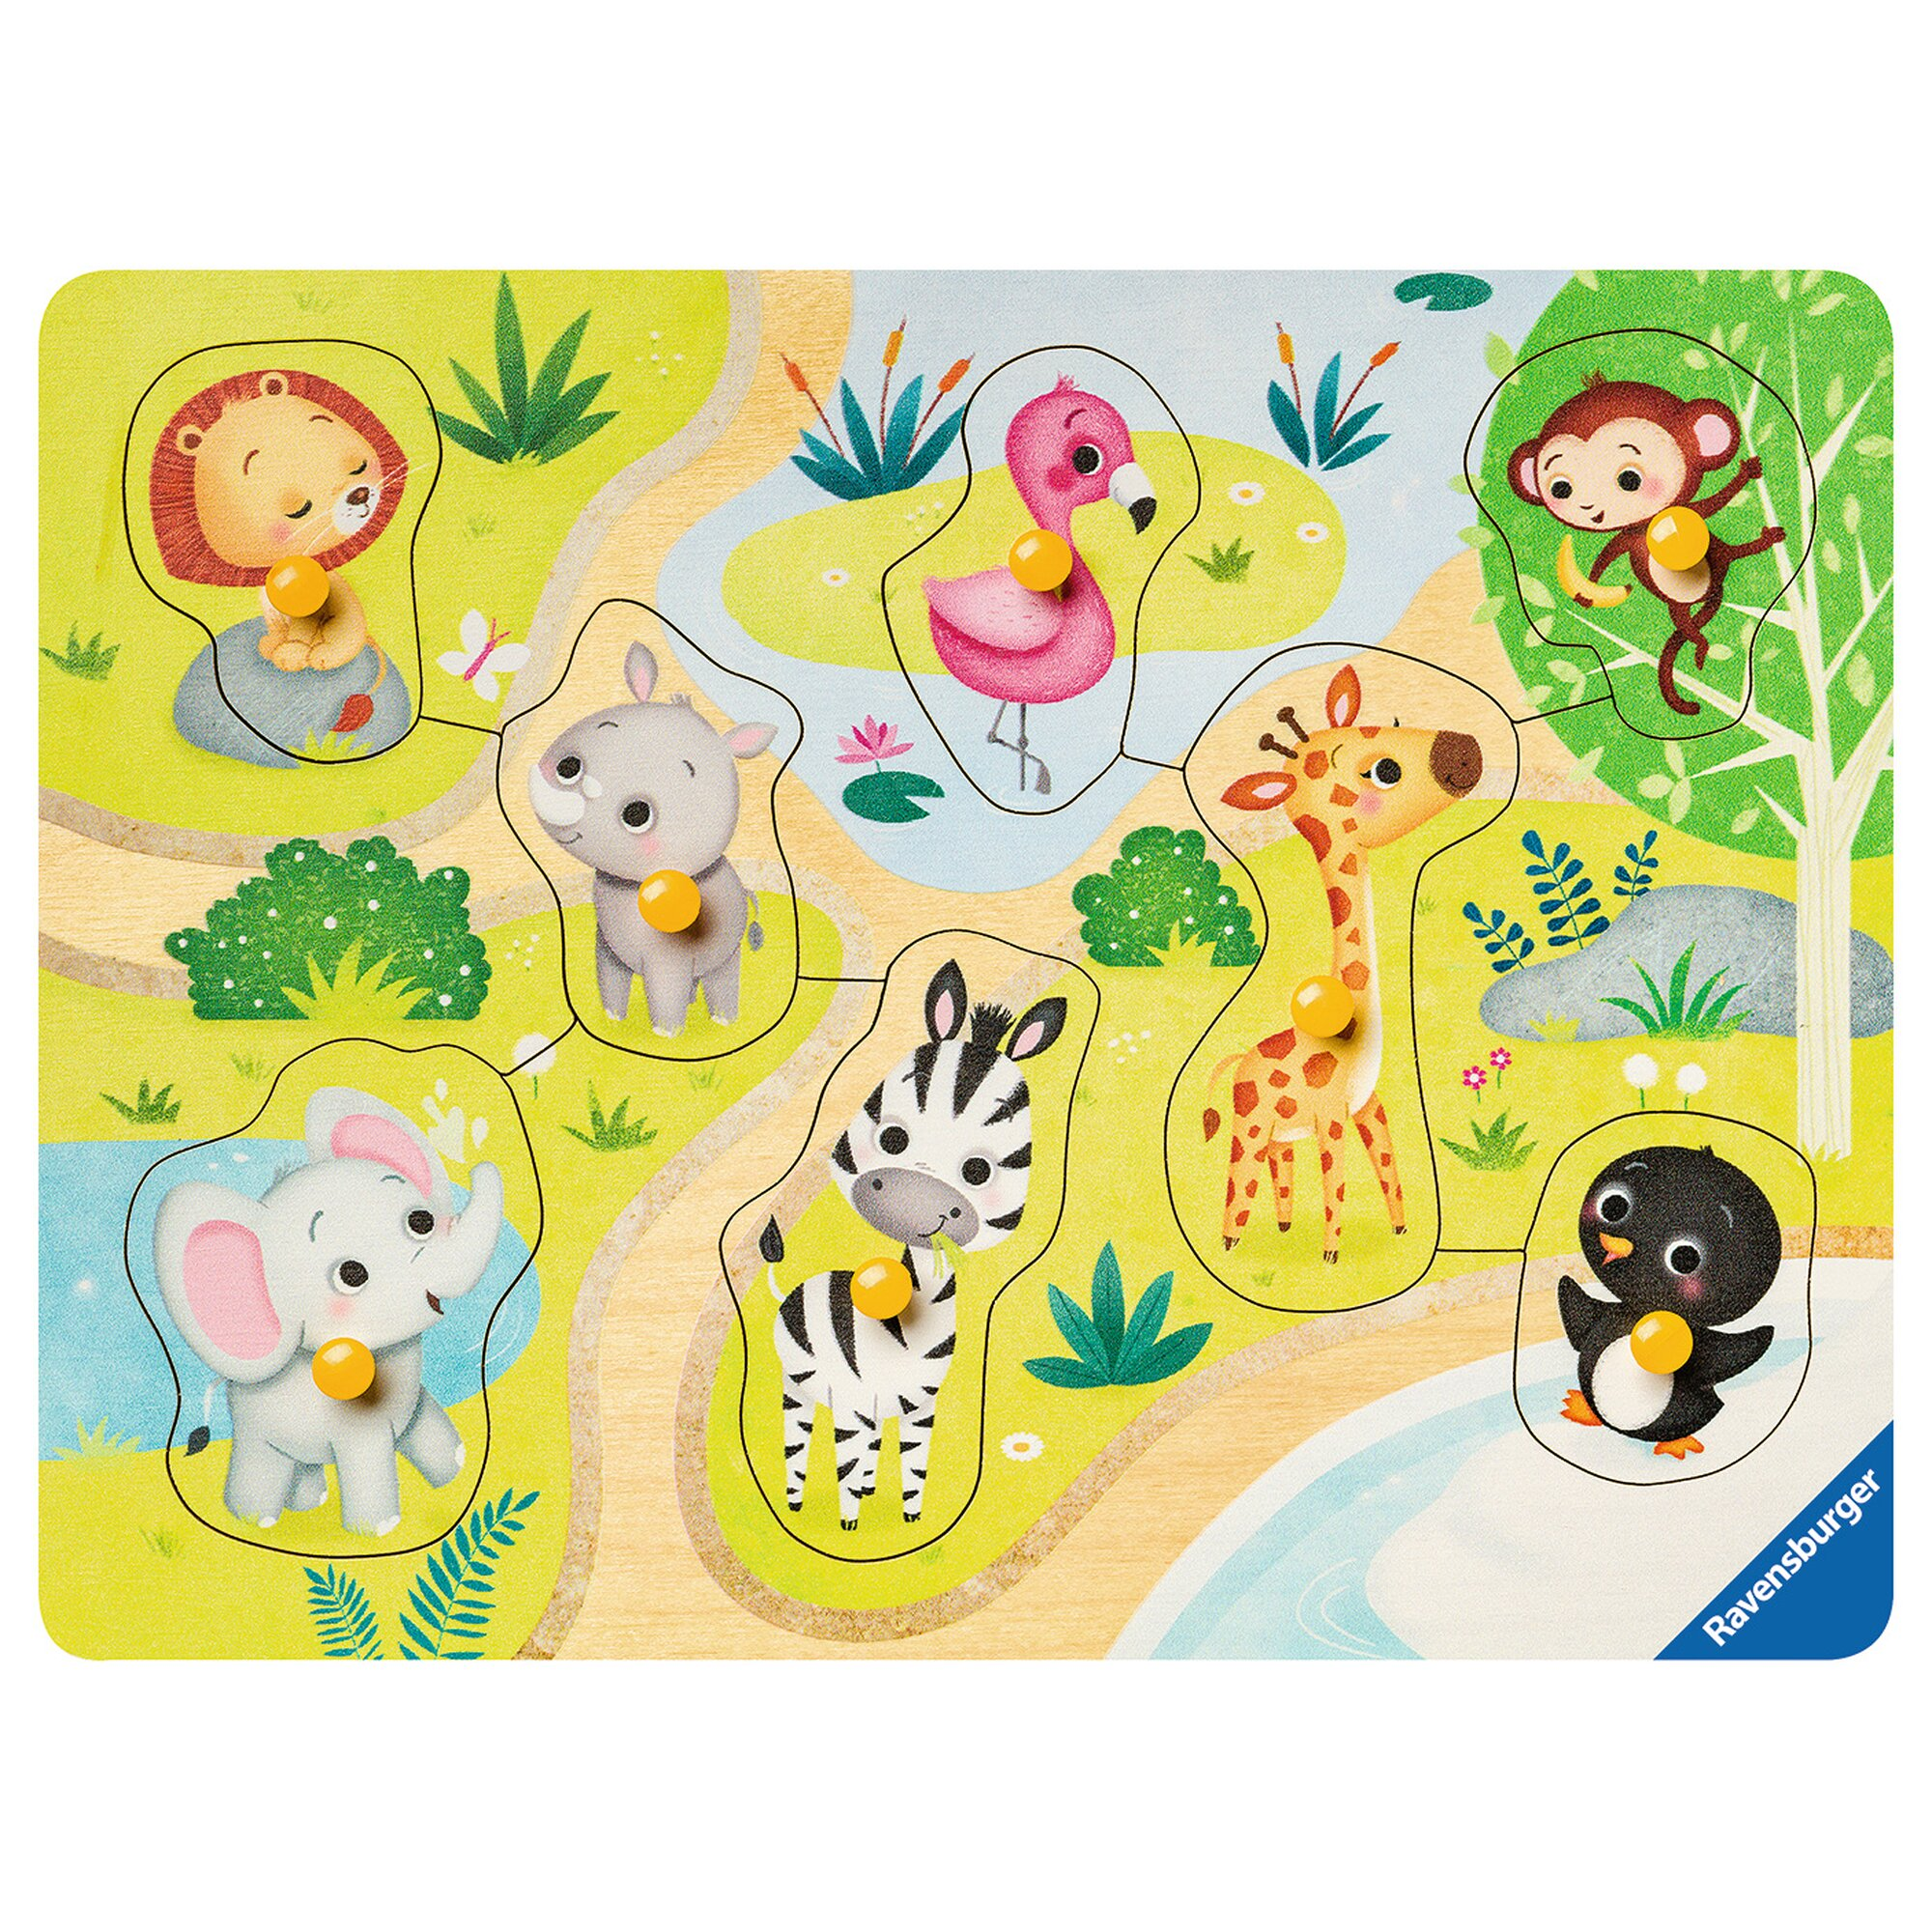 ravensburger-my-first-wooden-puzzles-8-teile-unterwegs-im-zoo